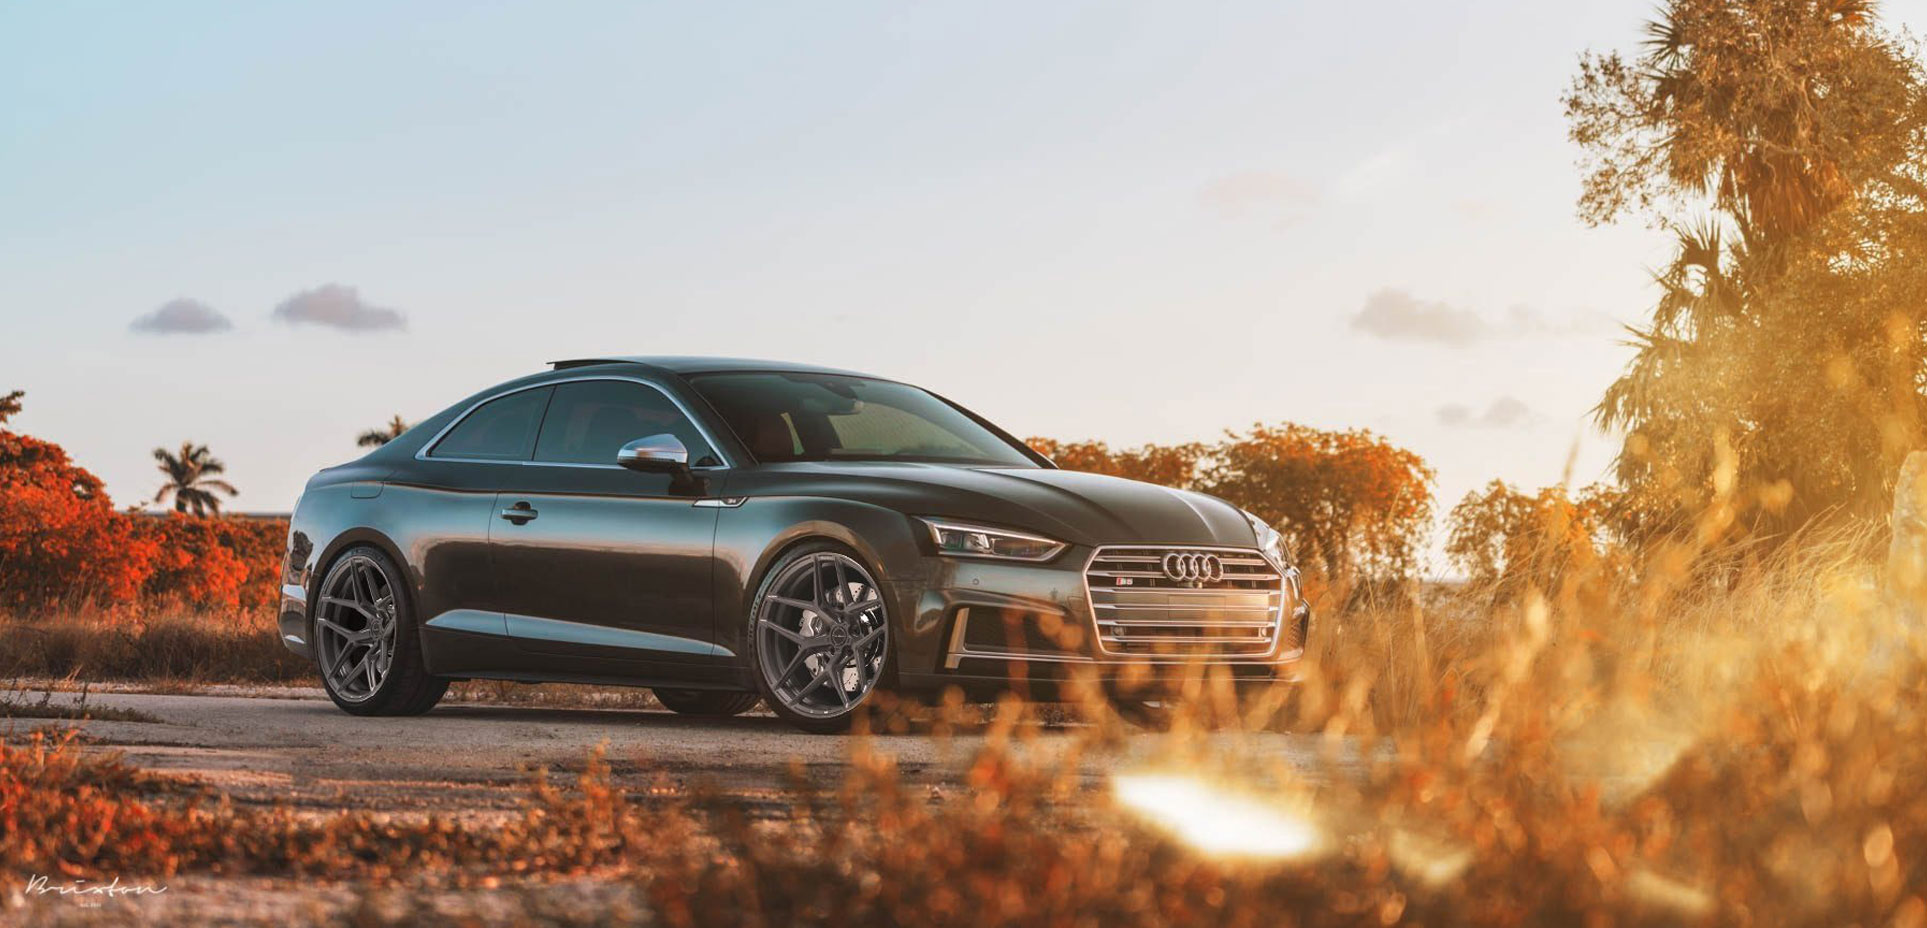 Audi S5 x Brixton Forged RF7 (Finished in Satin Black)